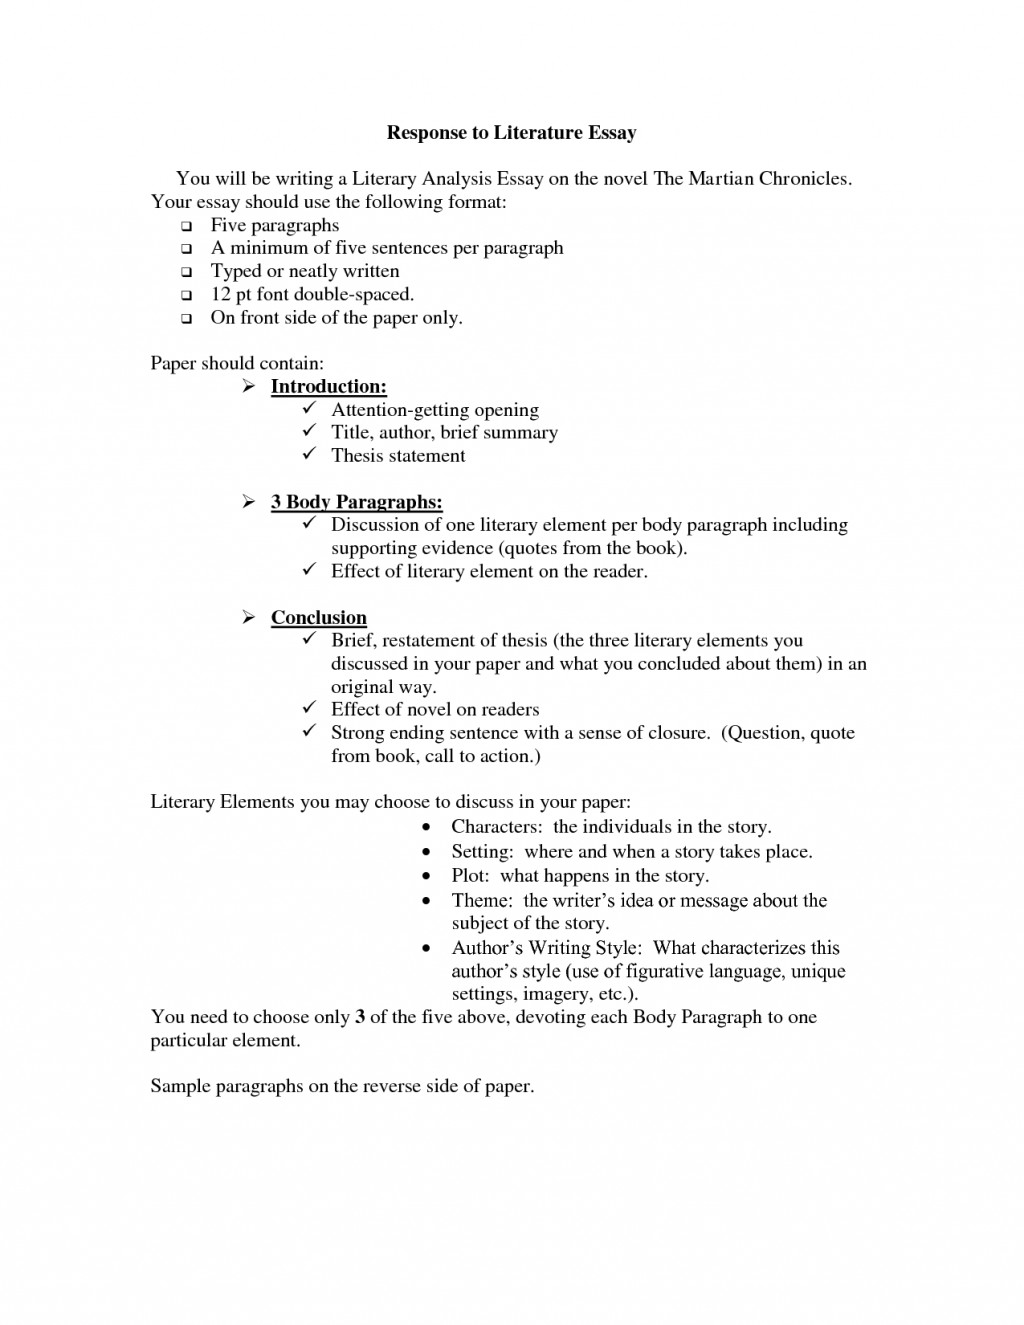 027 Write Critical Analysis Essay Response Literature Character Sketch Macbeth Introduction College Poetry Example Rhetorical Process Examples Analytical Research Paper Literary Paragraph Amazing Reader Assignment On The Story Of An Hour Large